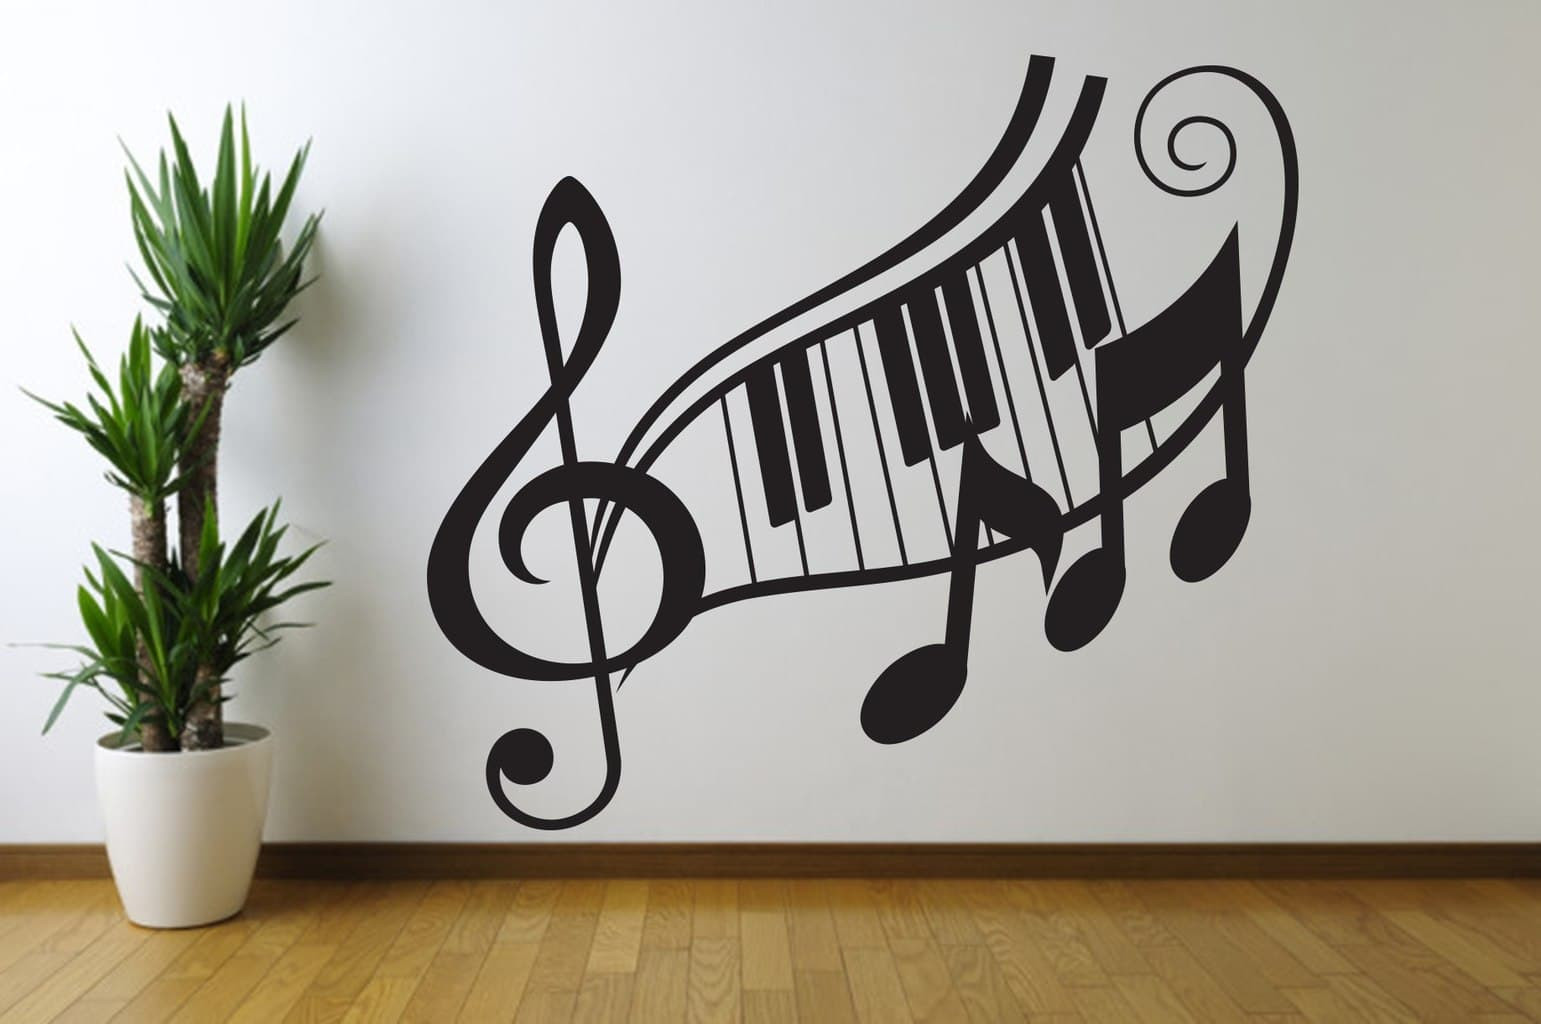 Best ideas about Music Wall Art . Save or Pin Music note treble clef wall art decal Now.